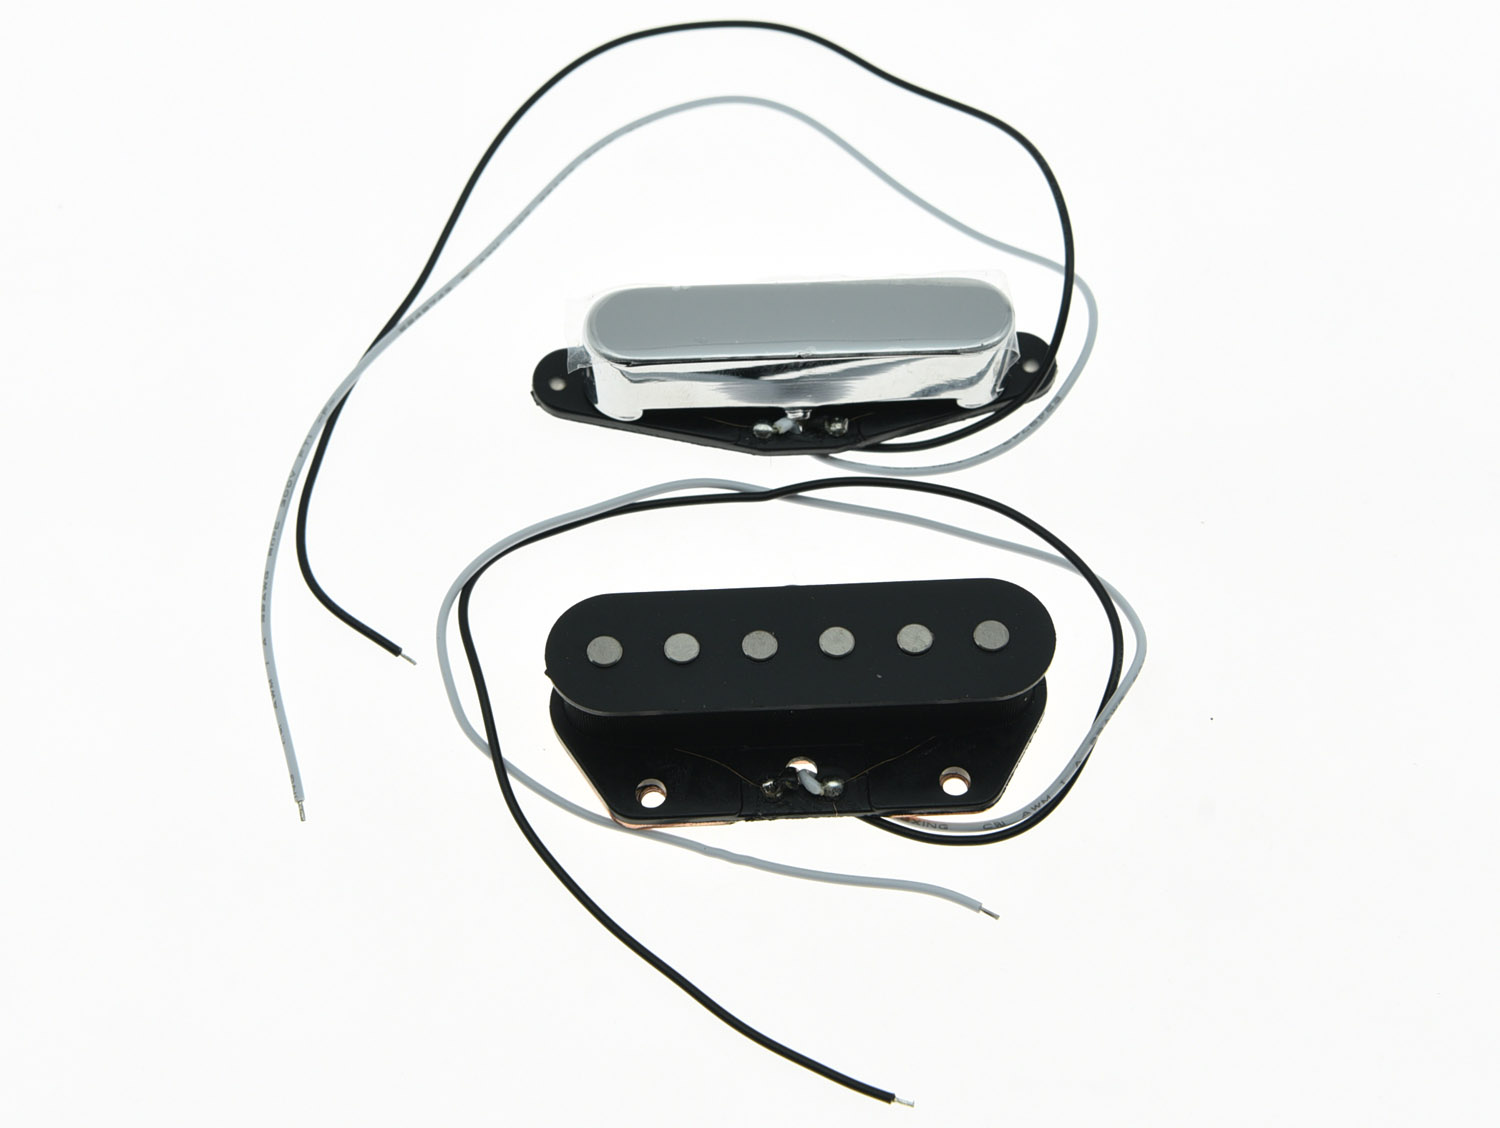 KAISH Set of 2 Vintage Sound Alnico 5 Tele Pickup Pickups for Telecaster<br>